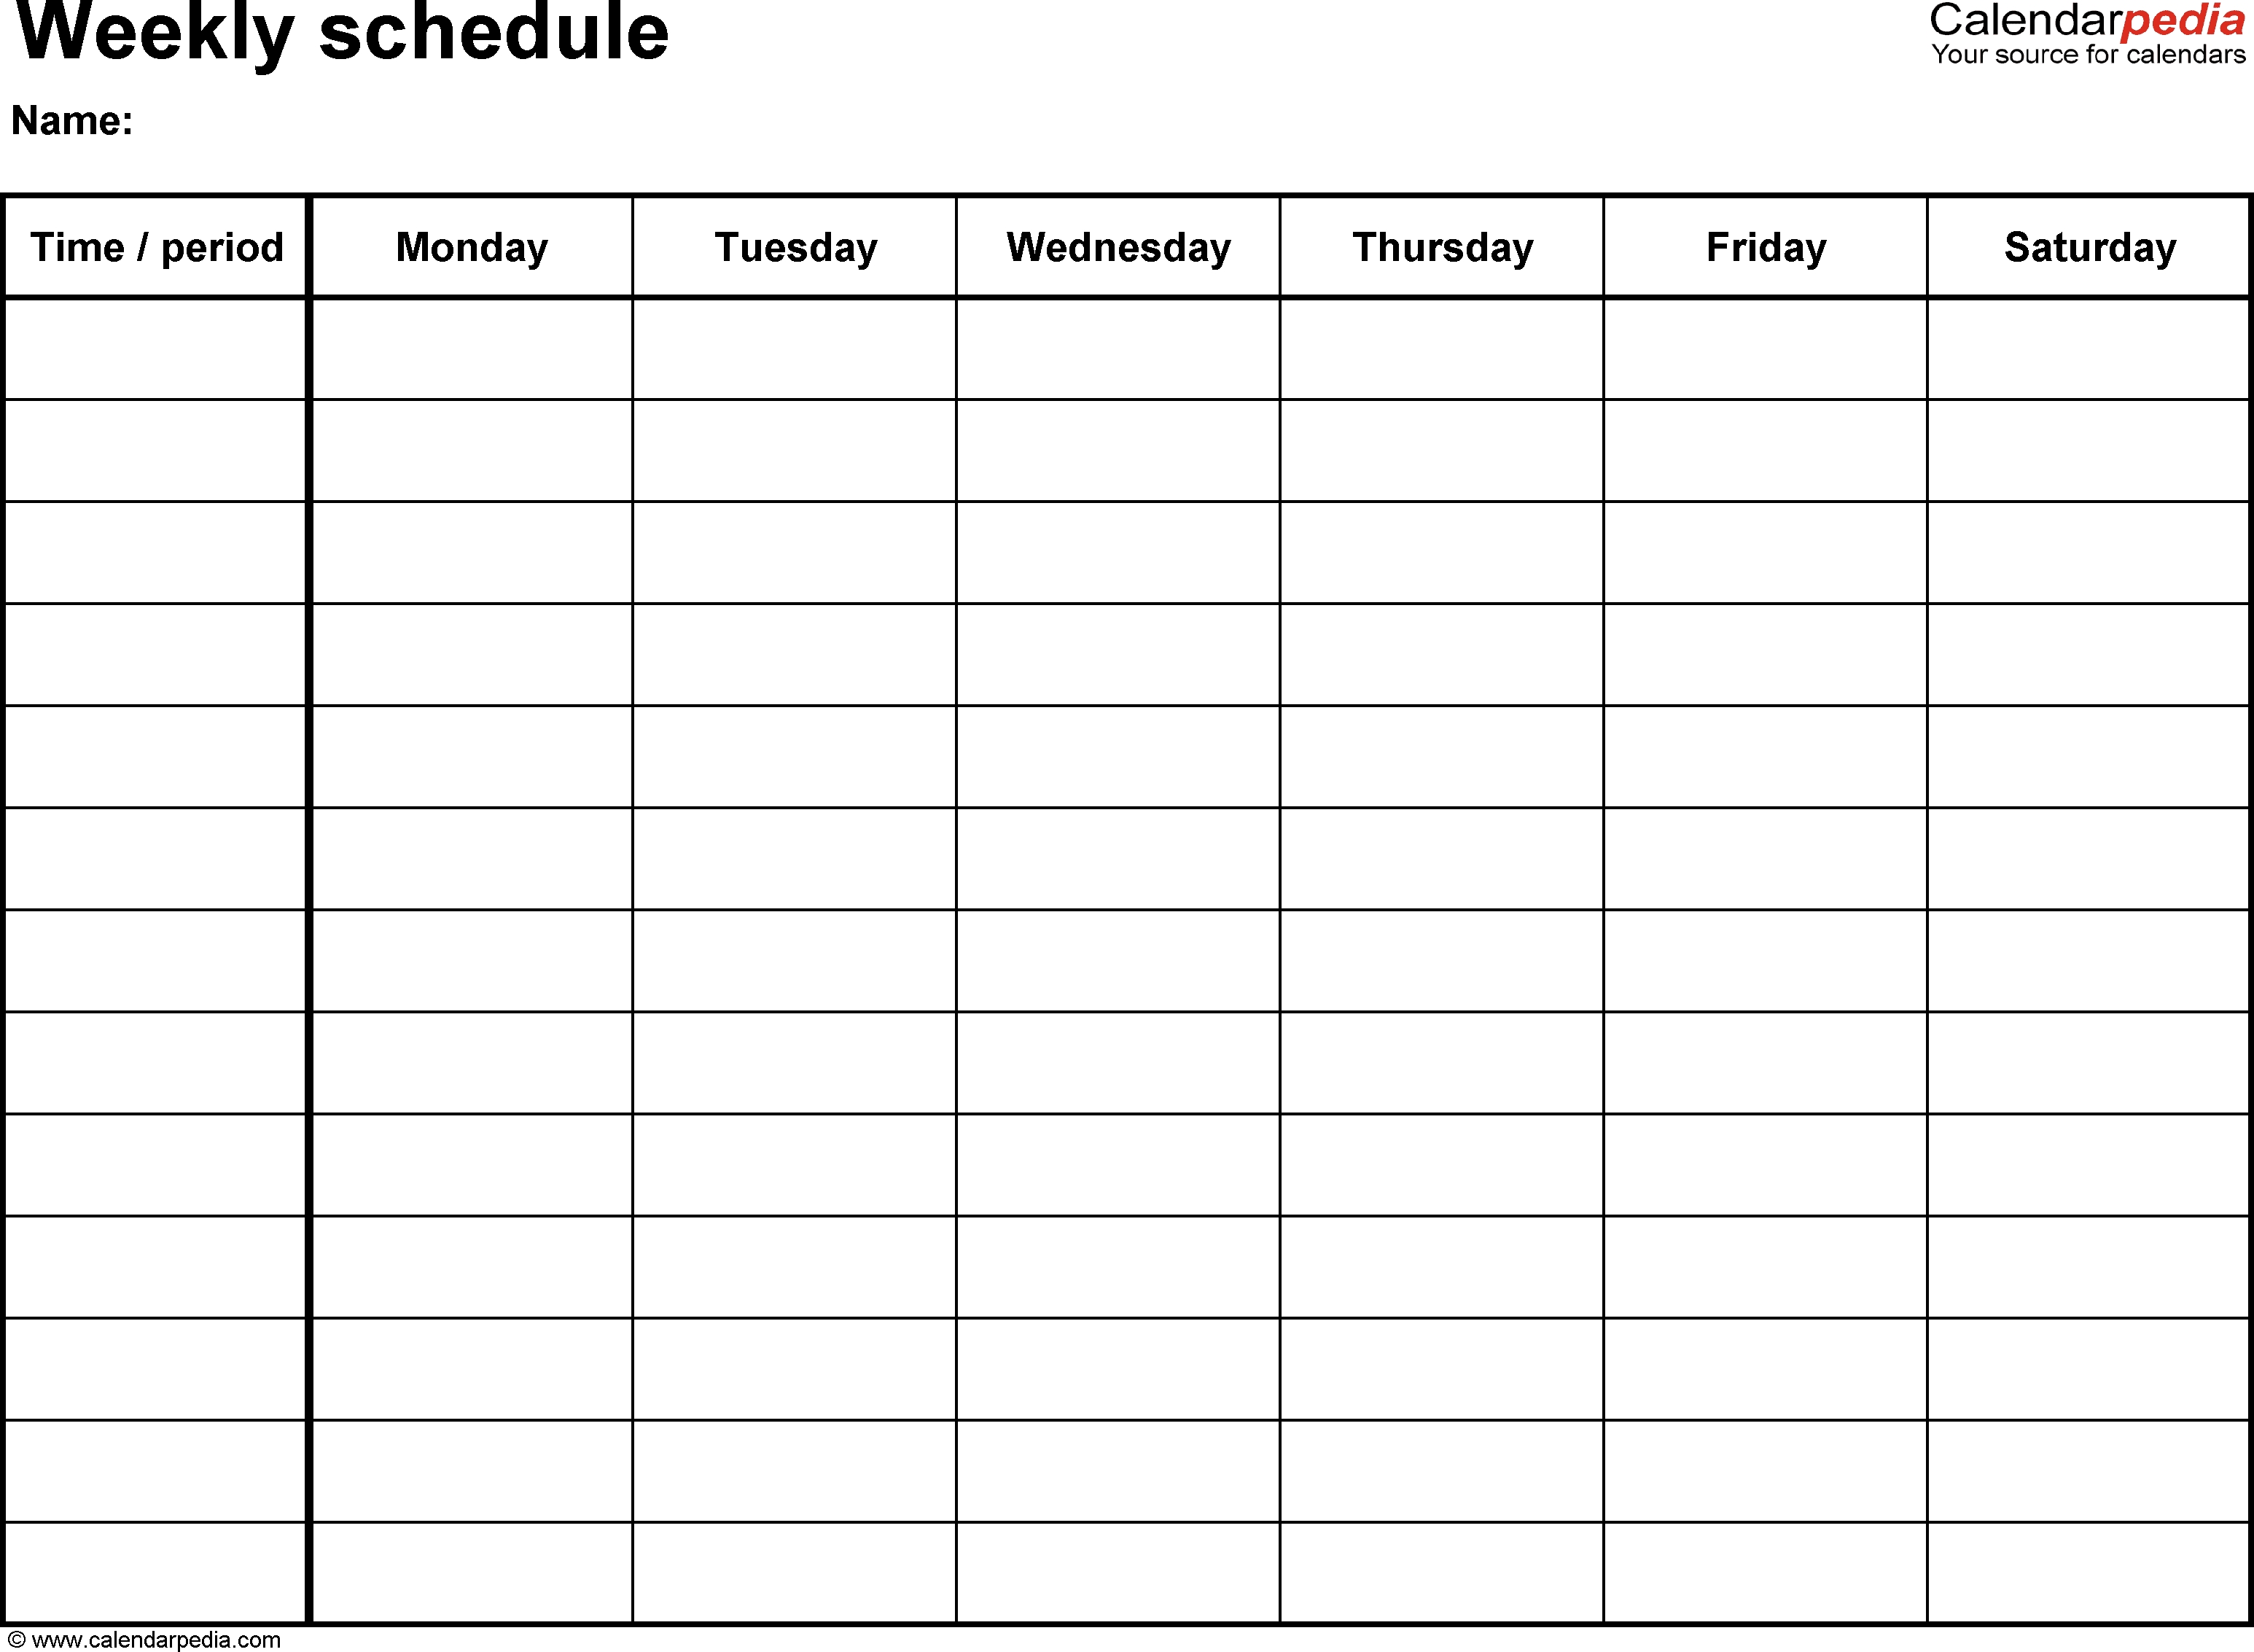 Free Weekly Schedule Templates For Word - 18 Templates  Monday Through Friday Schedule Printable